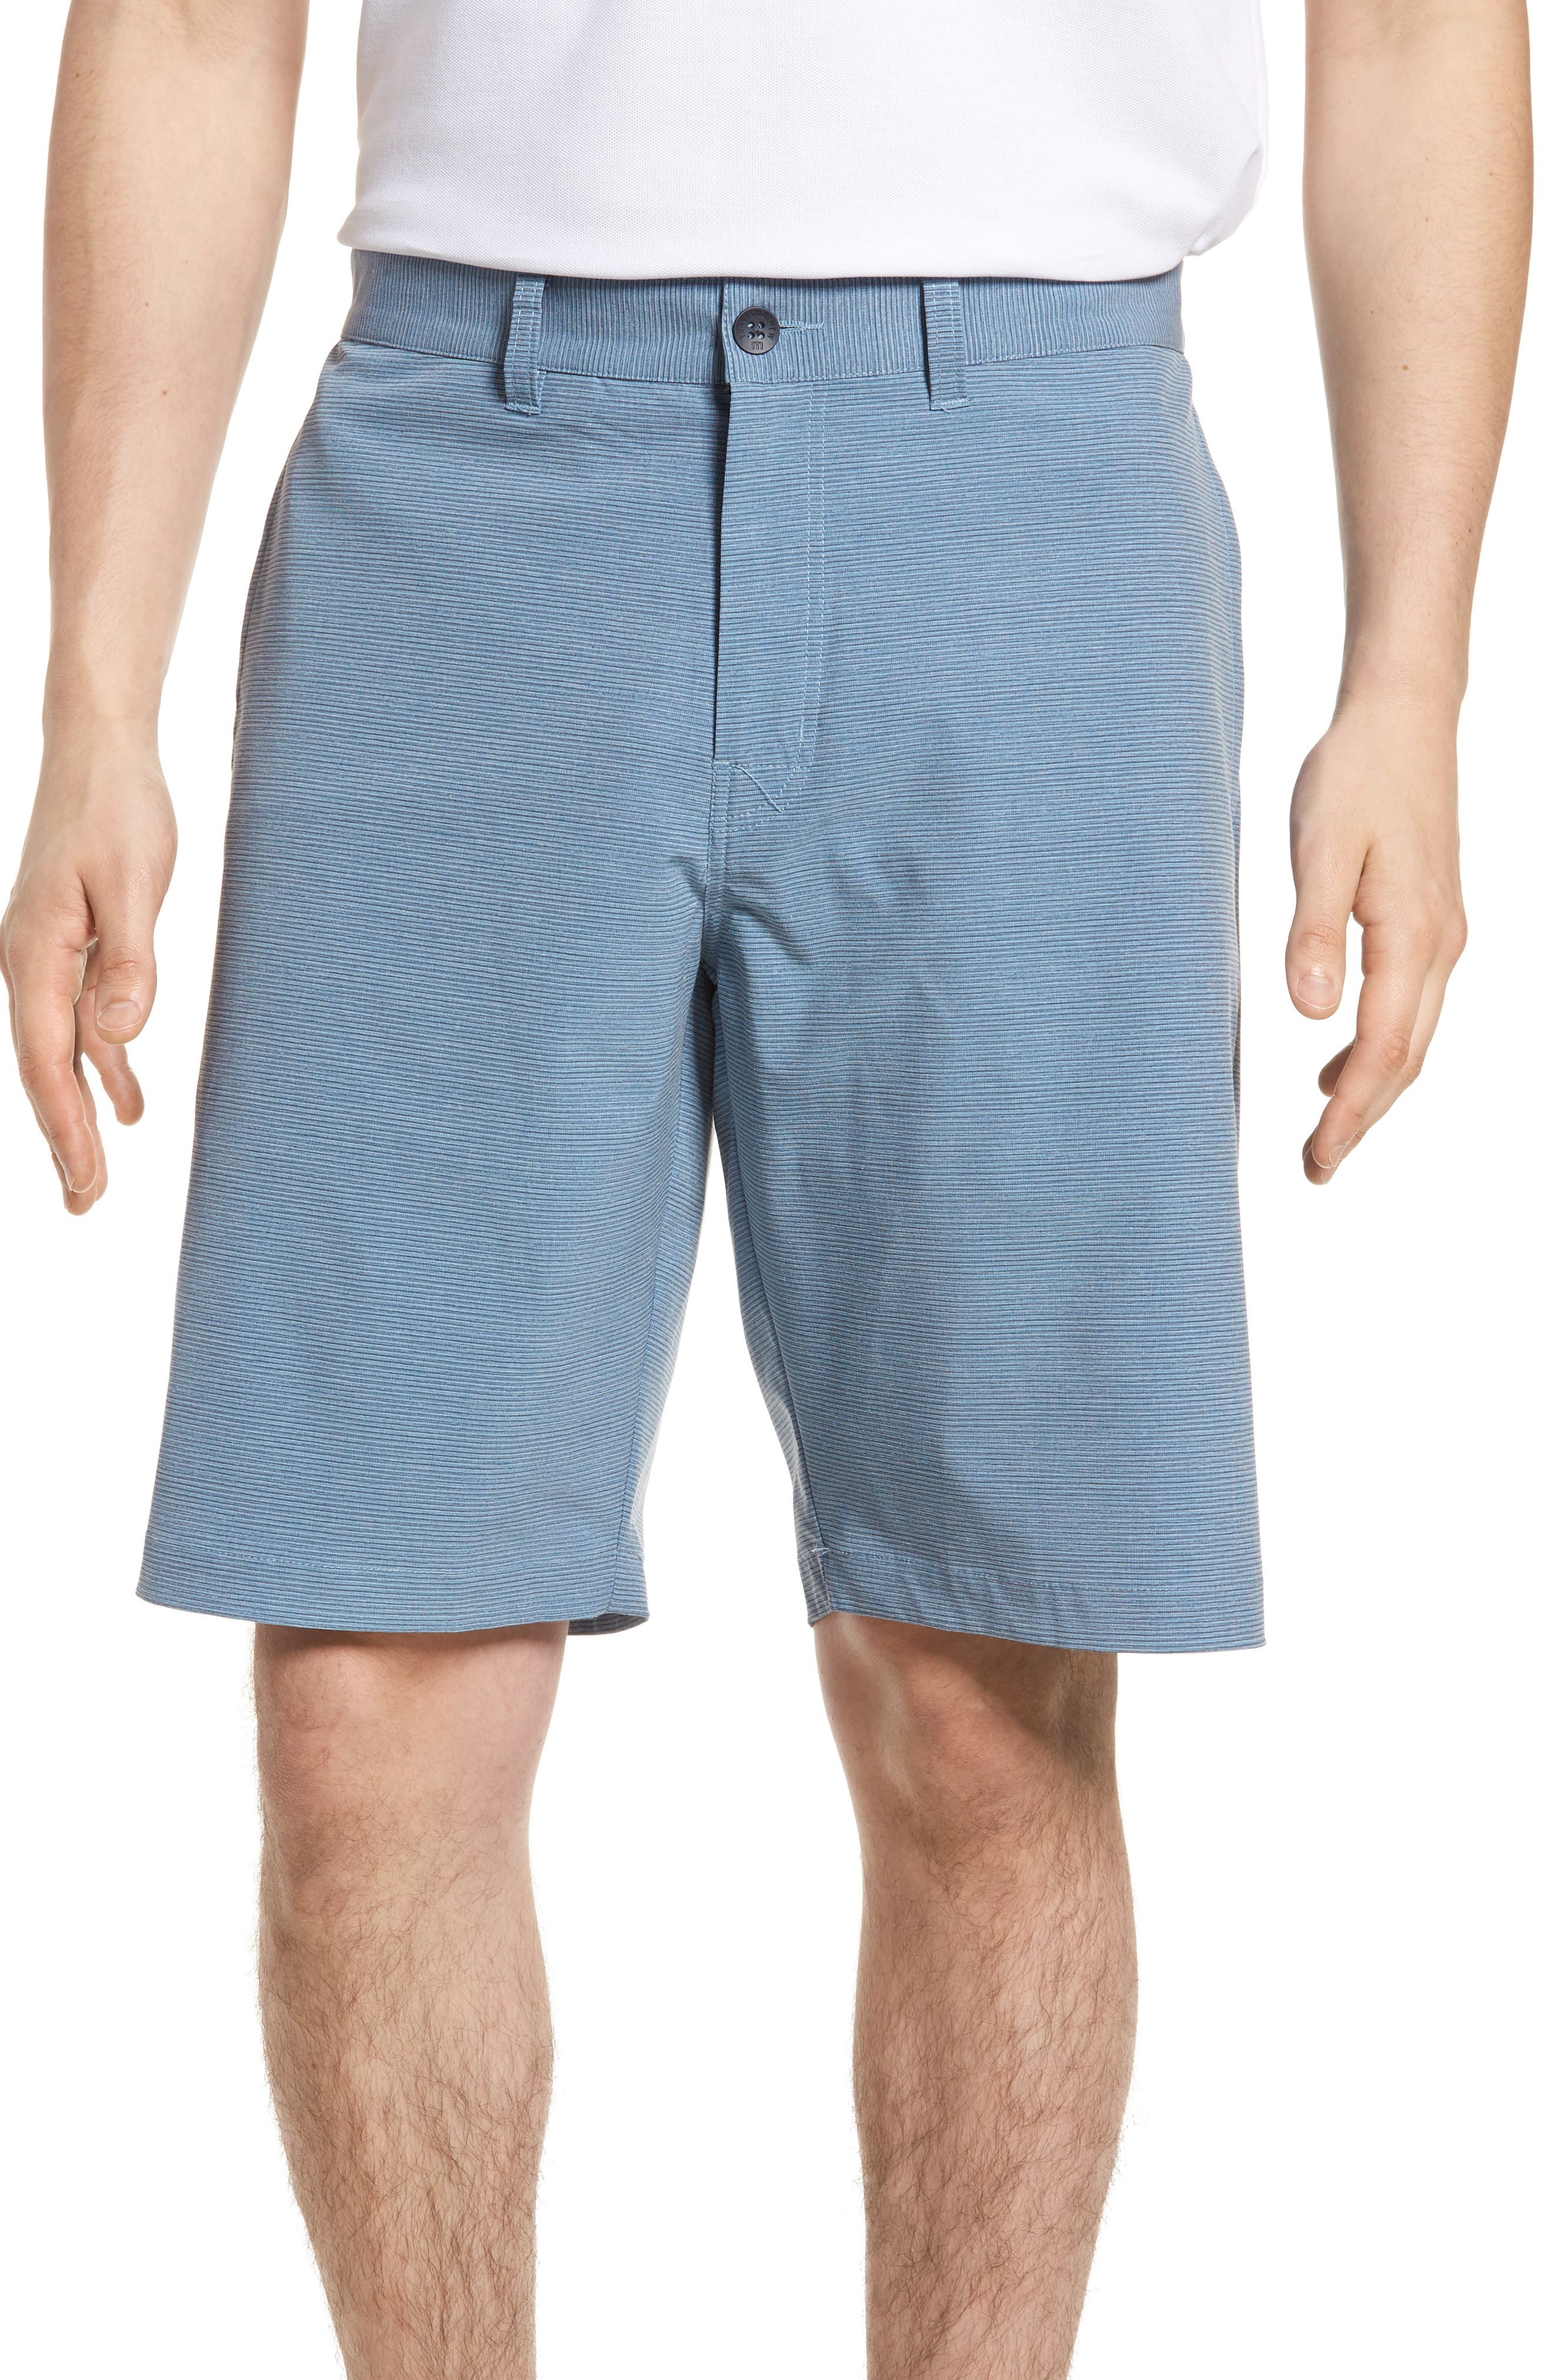 Toro Regular Fit Microstripe Shorts,                         Main,                         color, French Blue/ Micro Chip